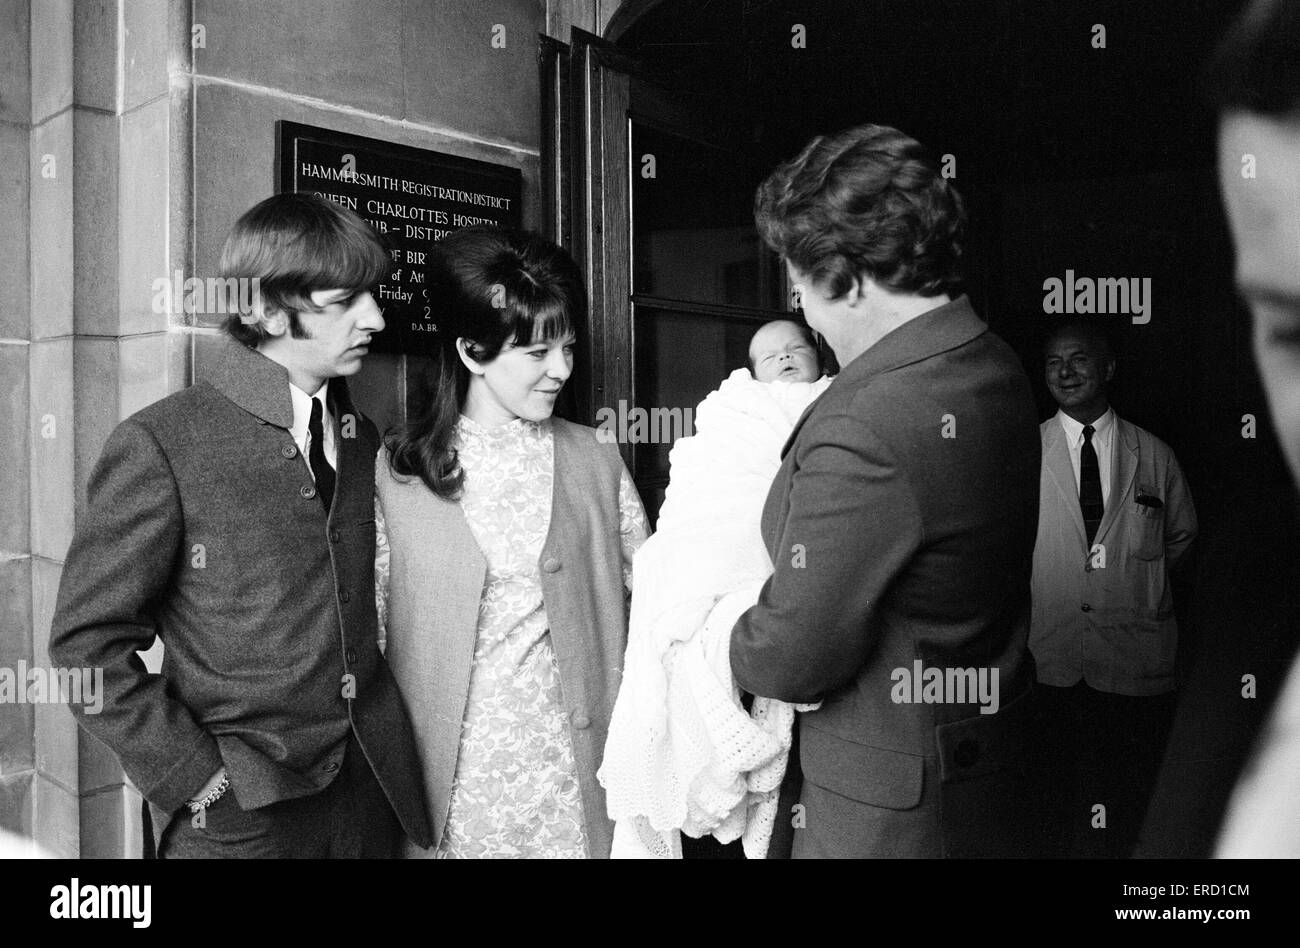 Ringo Starr with wife Maureen Starkey and baby son Zac (aged 9 days old) at Queen Charlottes Maternity Hospital, - Stock Image